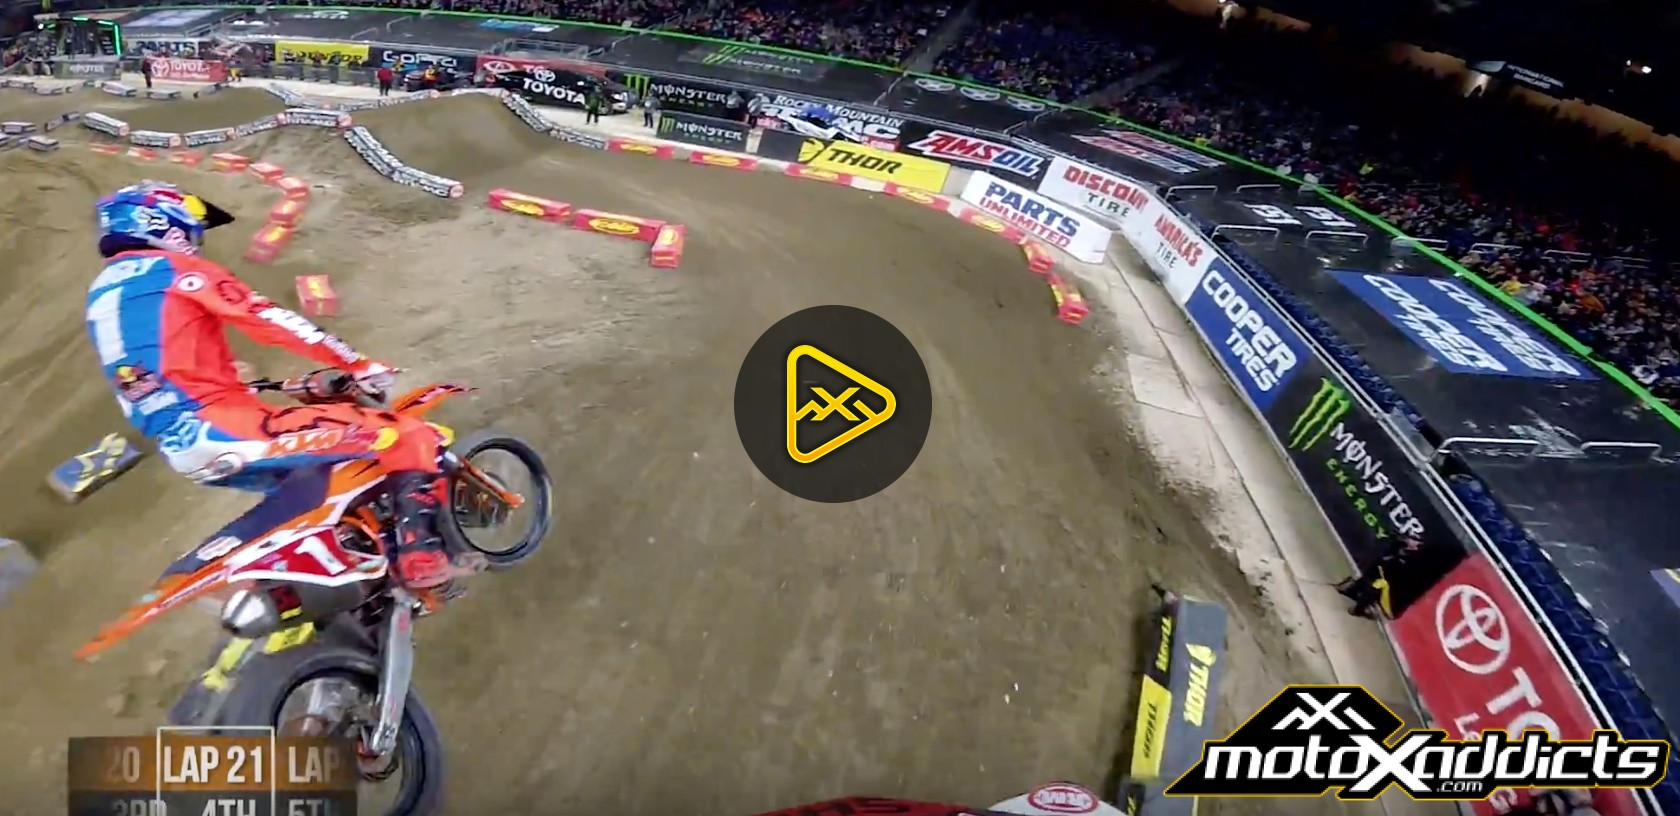 Helmet Cam: Davi Millsaps' Main Event at 2017 Detroit SX